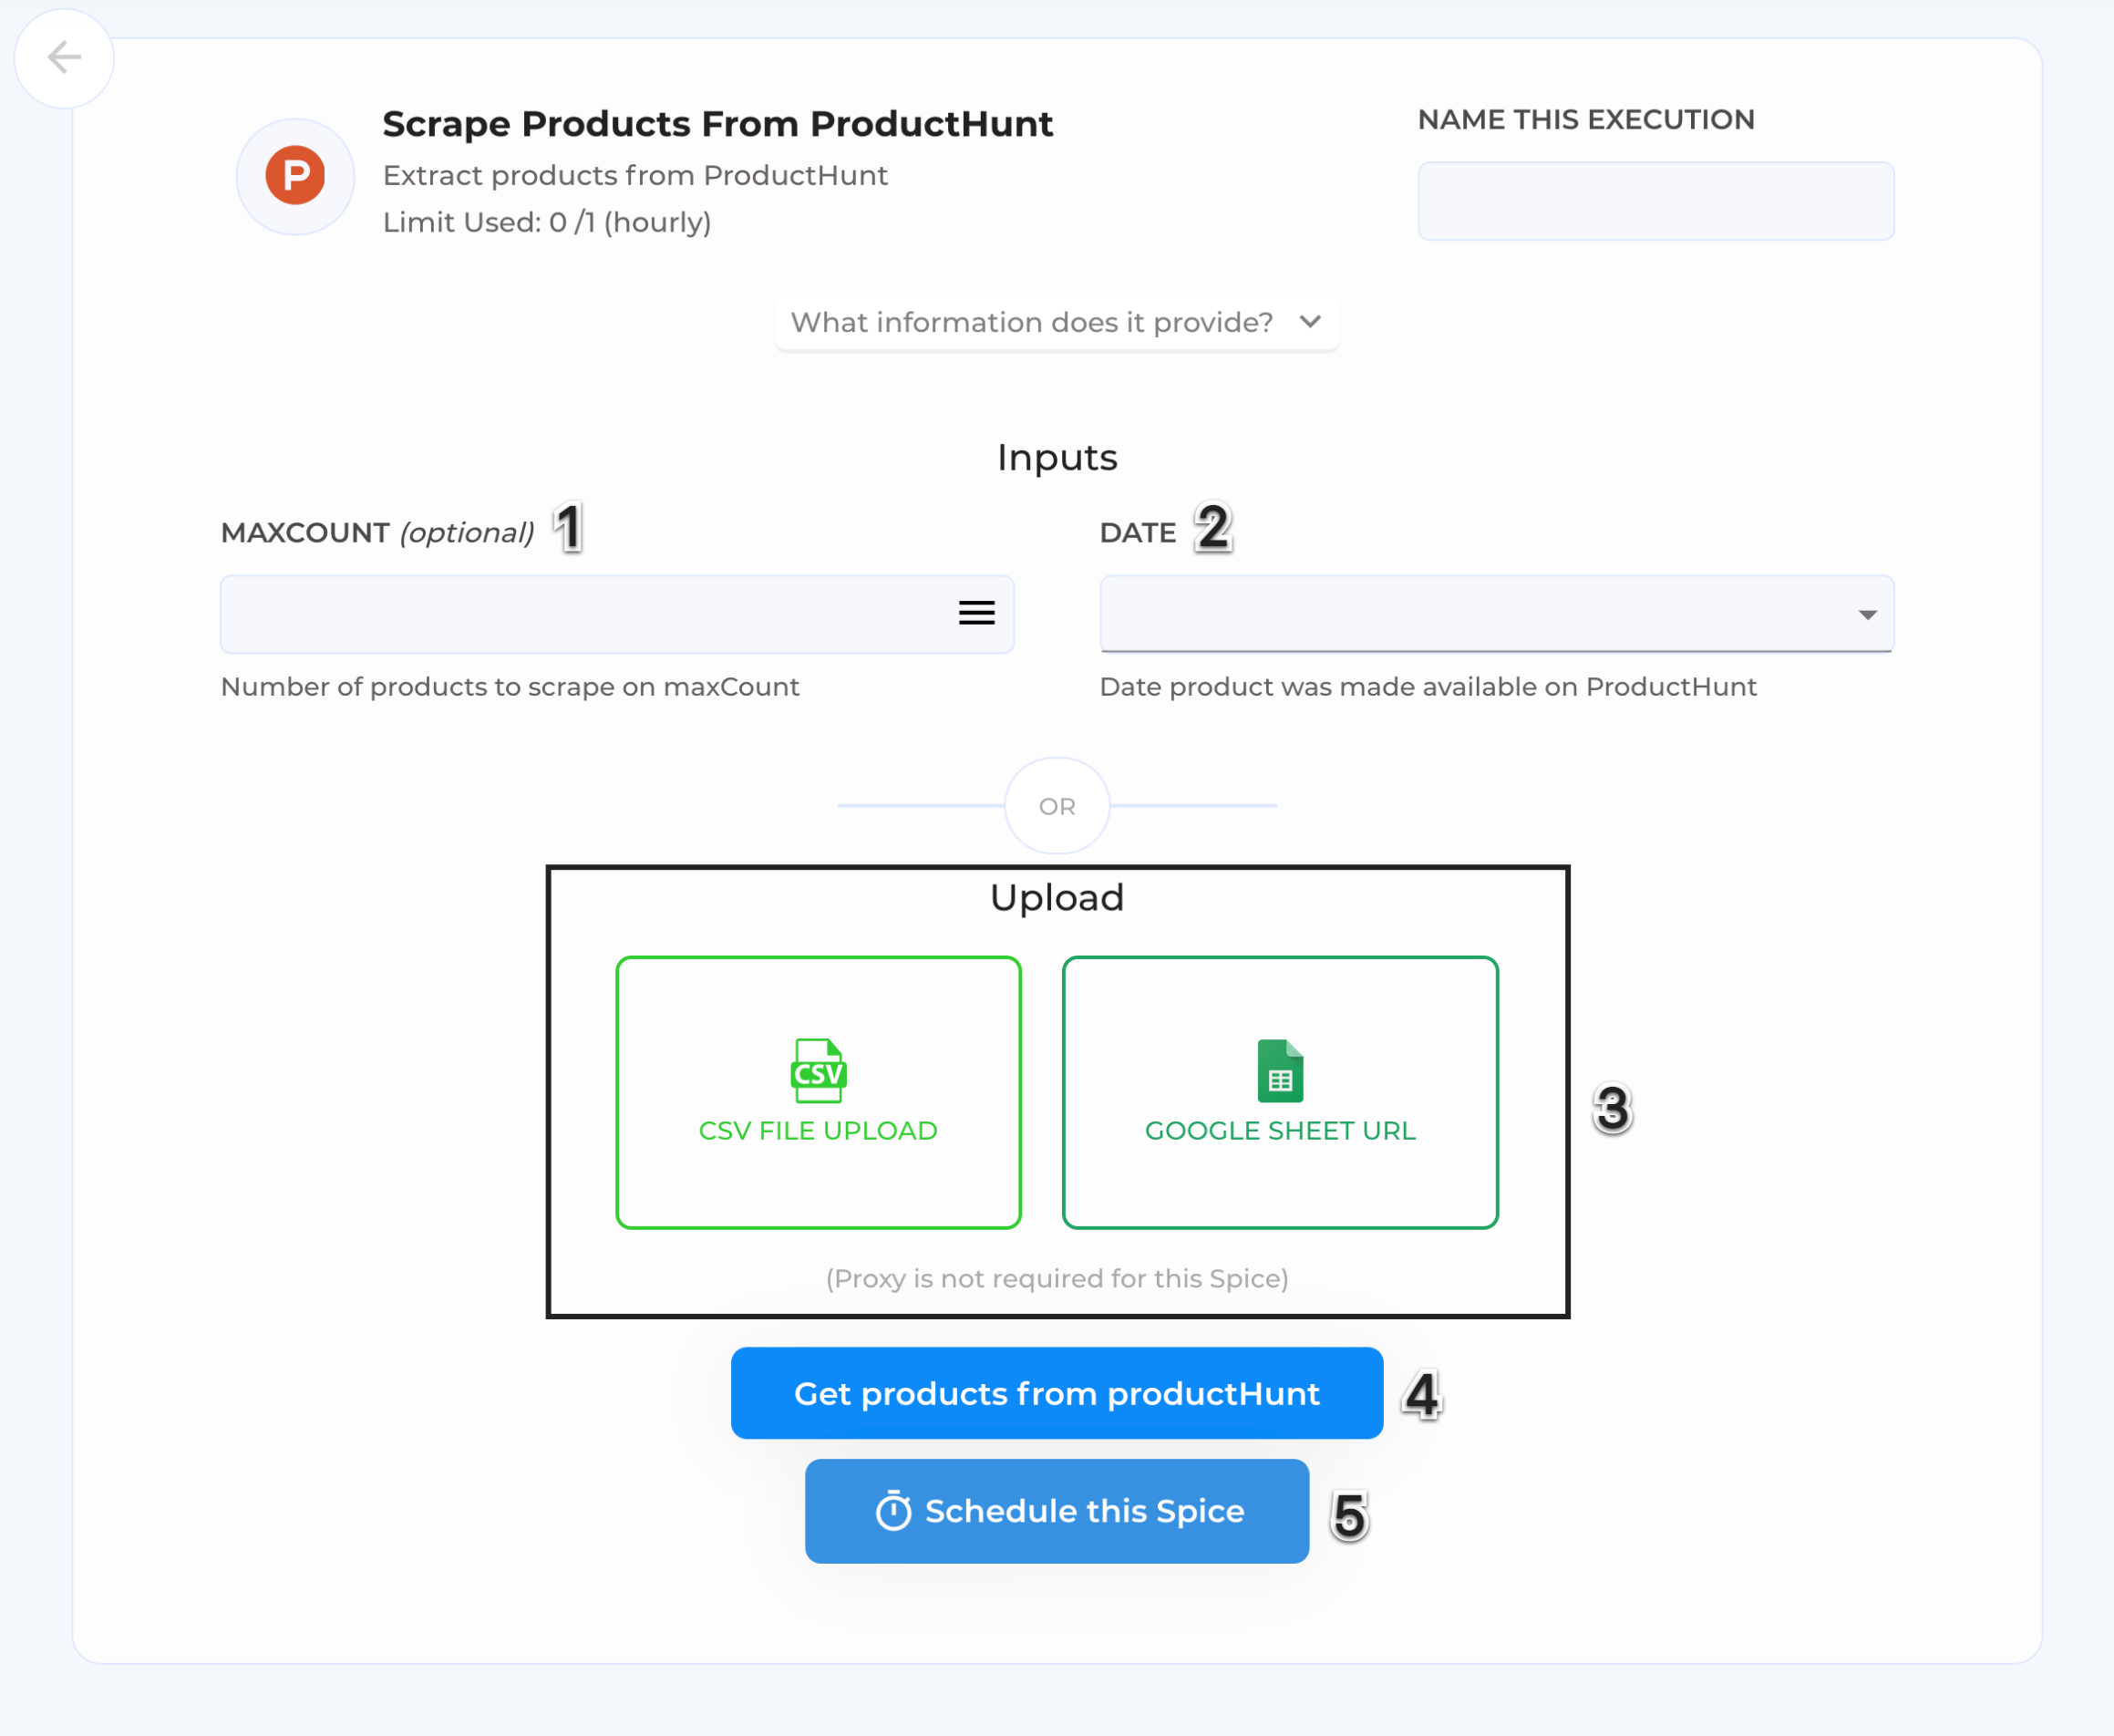 Get the products from producthunt